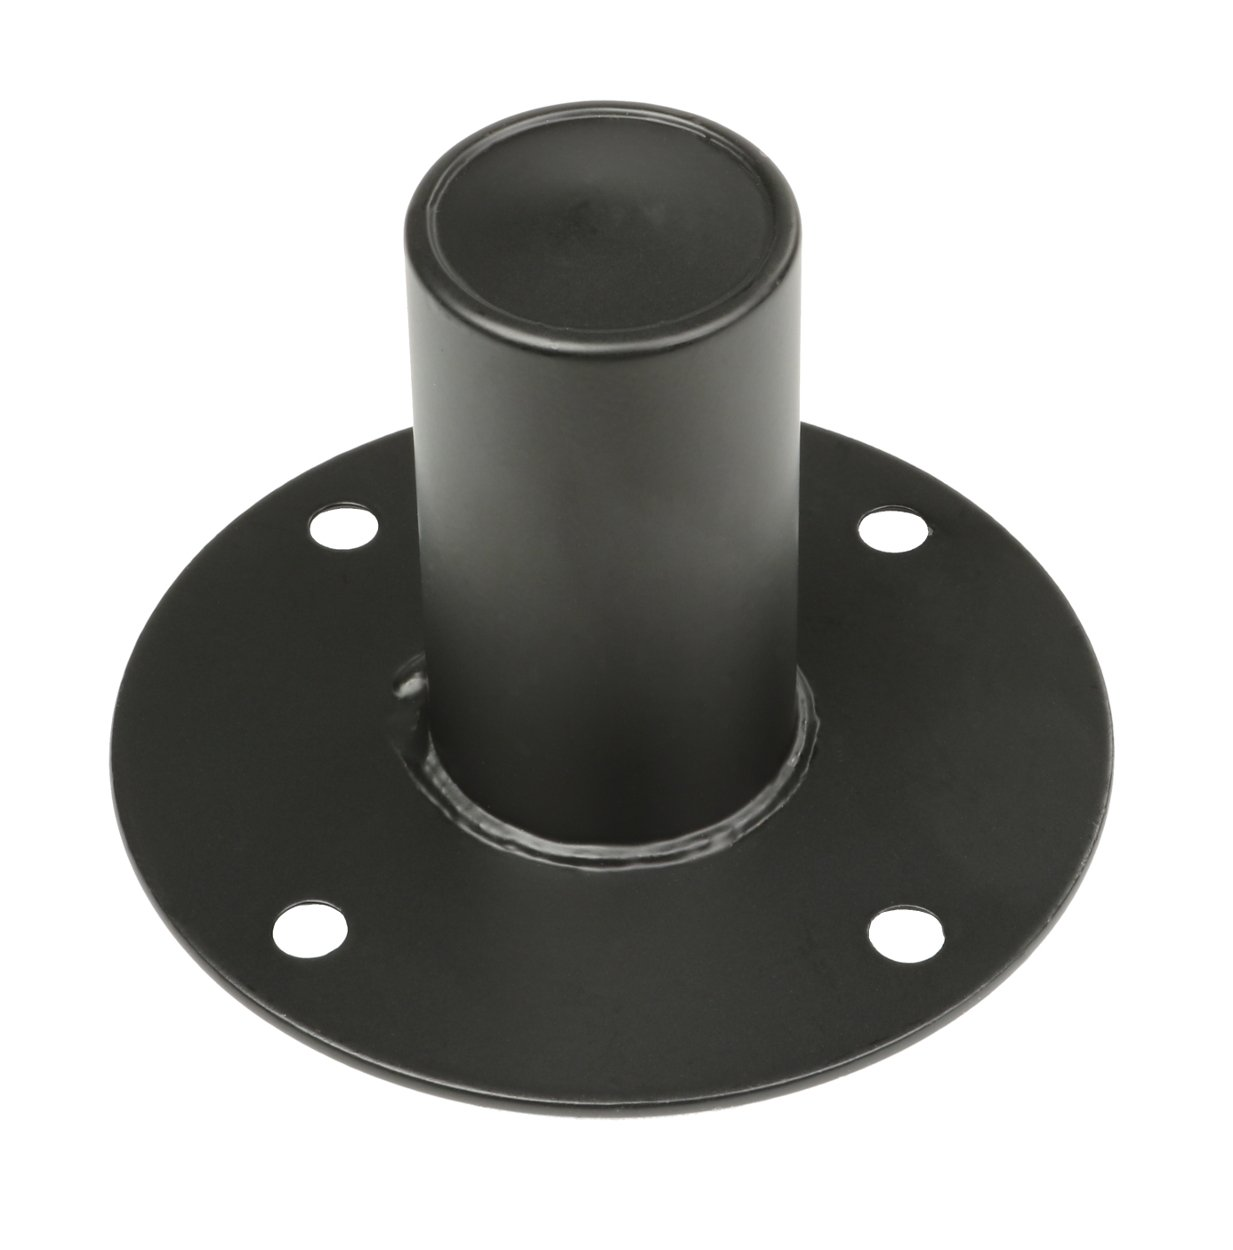 Zero Degree Stand Adapter for SP2